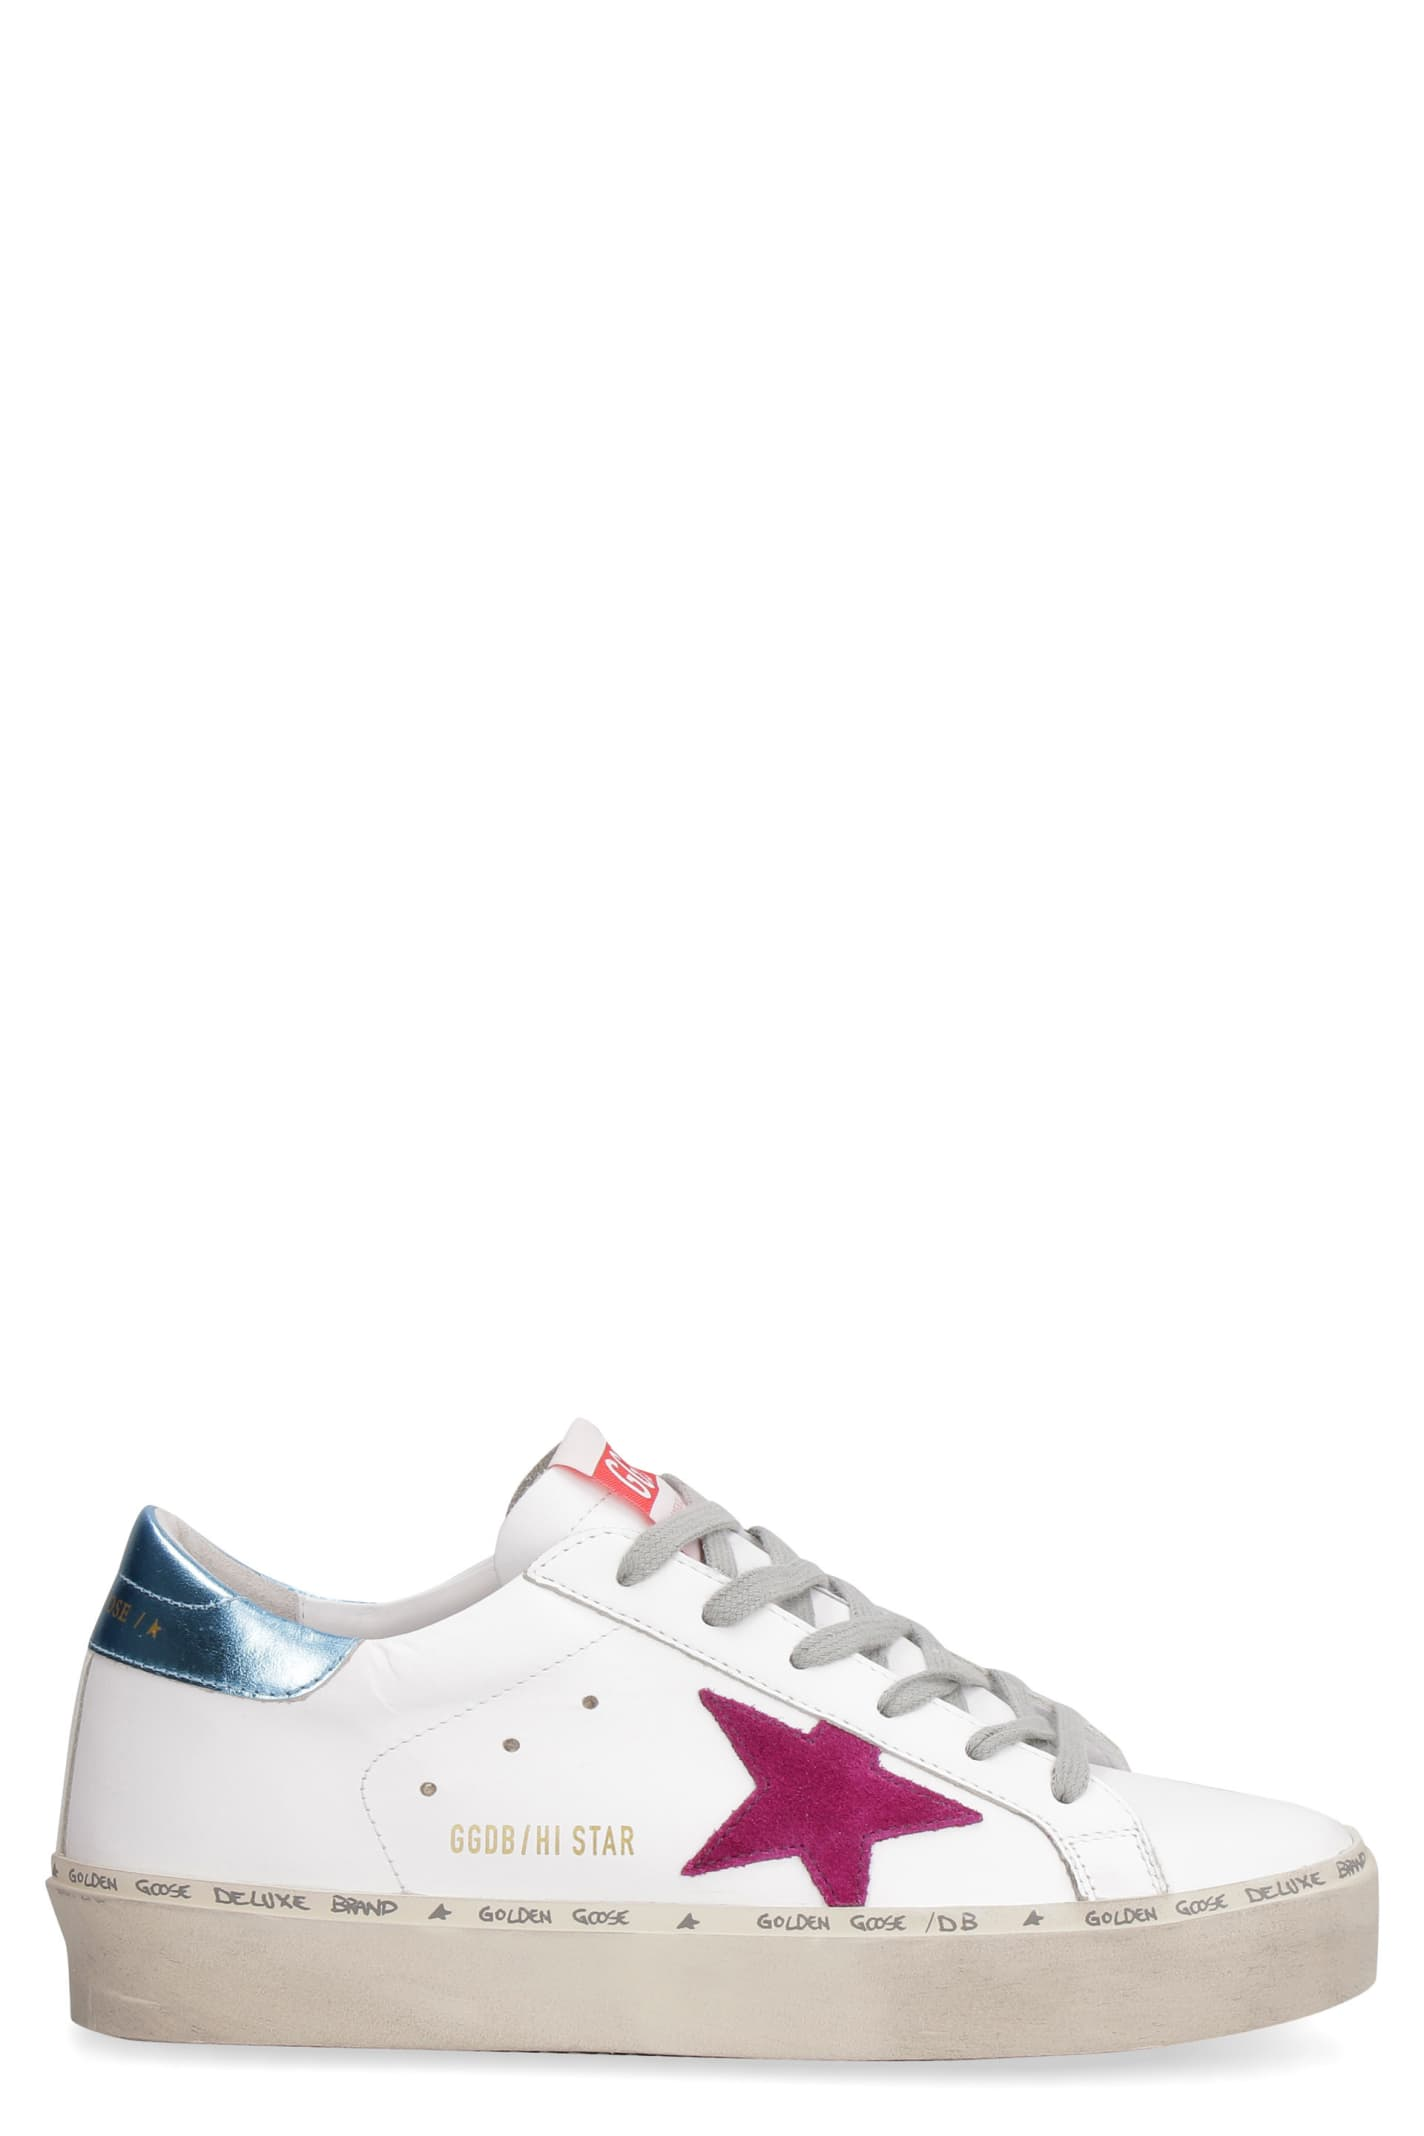 Buy Golden Goose Hi Star Leather Sneakers online, shop Golden Goose shoes with free shipping